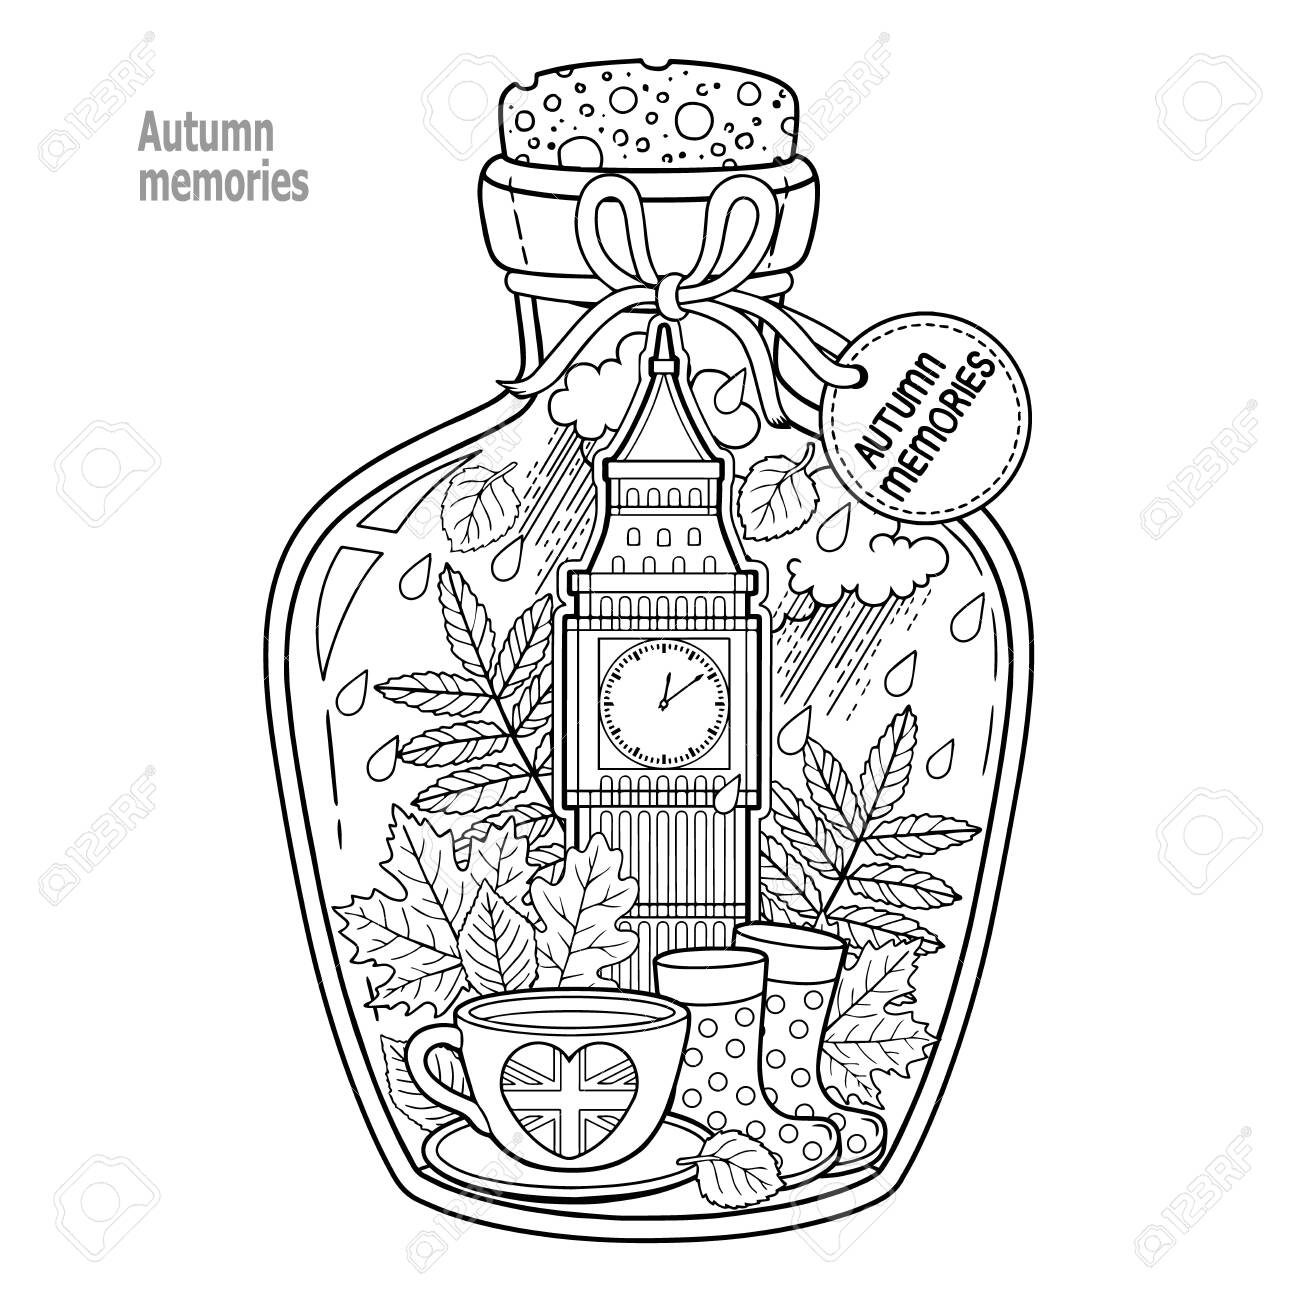 Coloring book for adults. A glass vessel with autumn memories of dreams about a trip to London. A bottle with rain, boots, leaves, a cup of tea, big ben tower london, Victoria Tower - 142159191